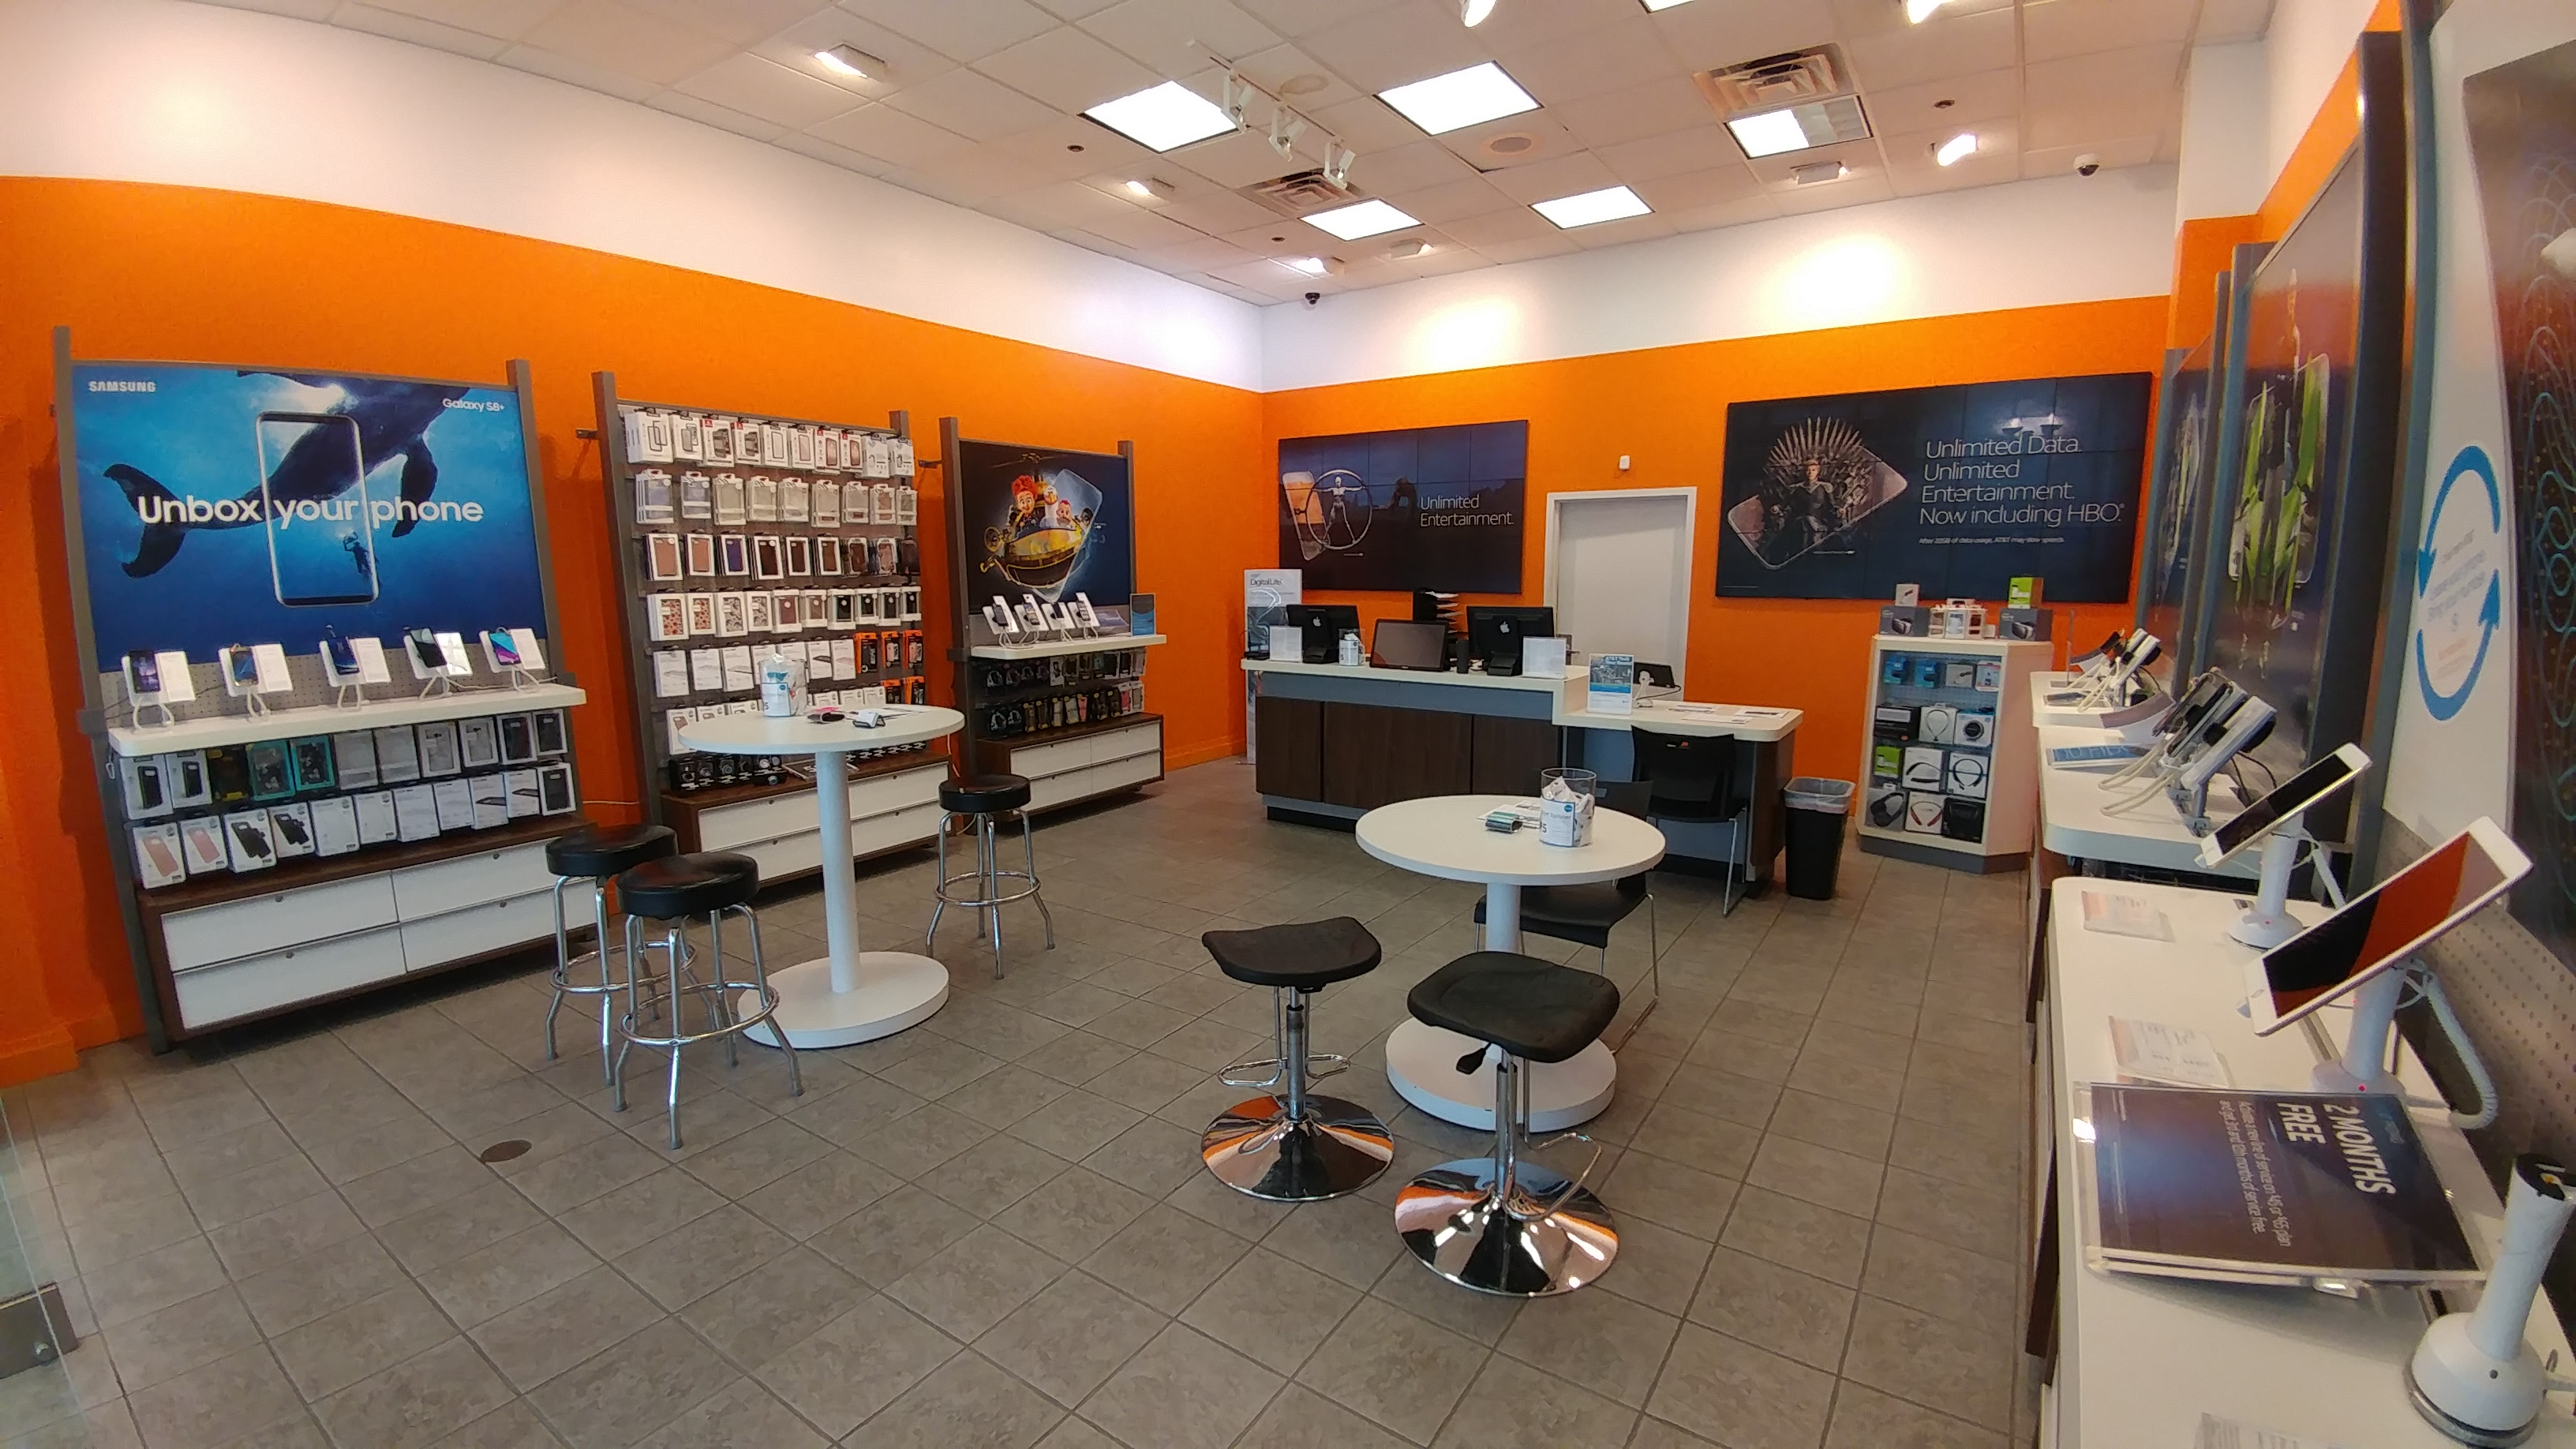 At t closed in paramus nj 07652 - 1 garden state plaza paramus nj 07652 ...